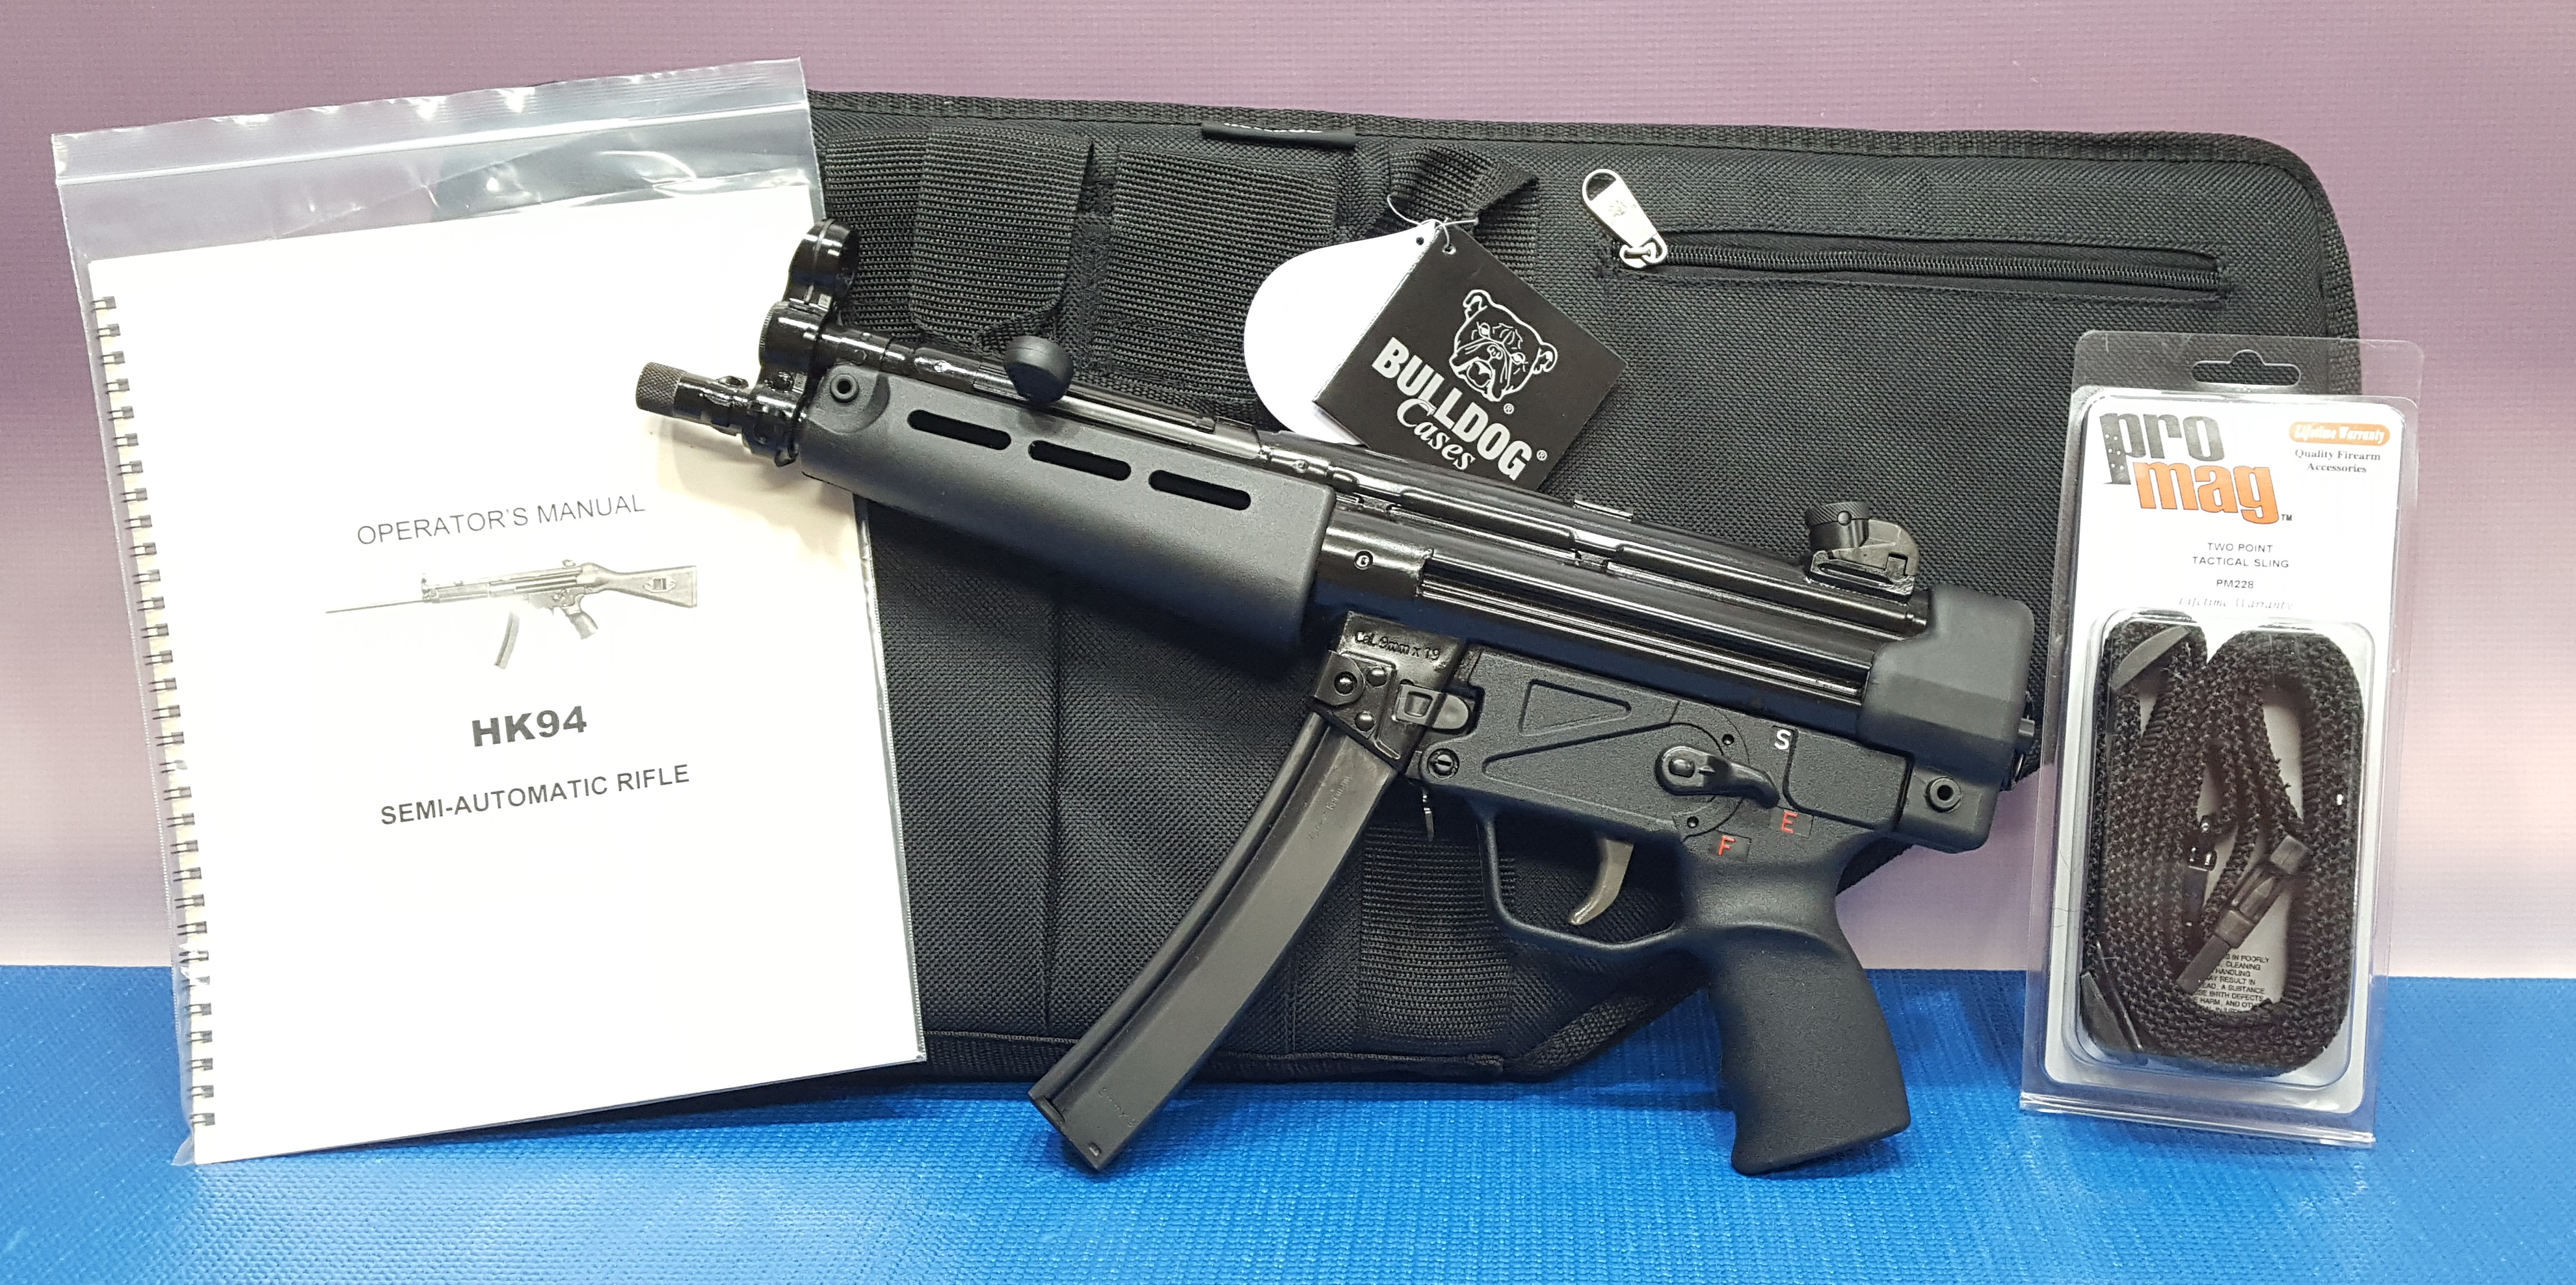 HK 94/MP5 by Kellyenterprises is a KE 94 Pistol in 9mm